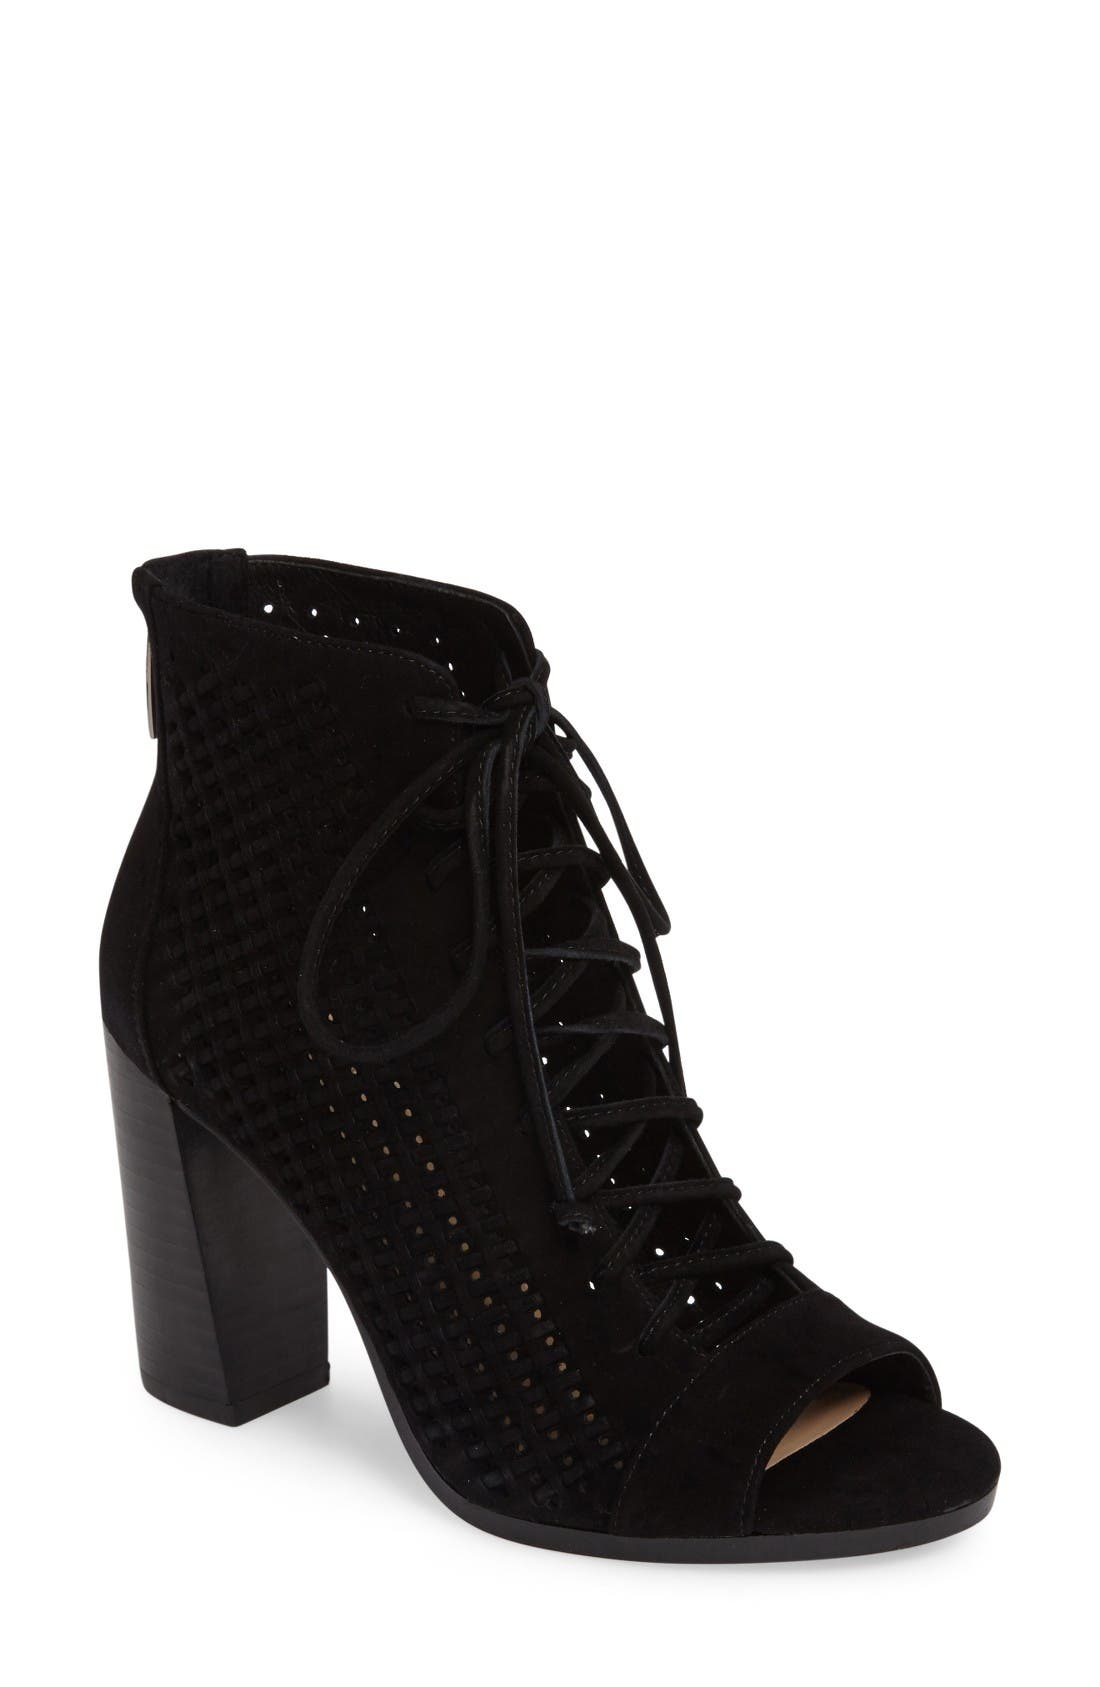 Kevina Lace-Up Open Toe Bootie,                             Main thumbnail 1, color,                             Black Suede